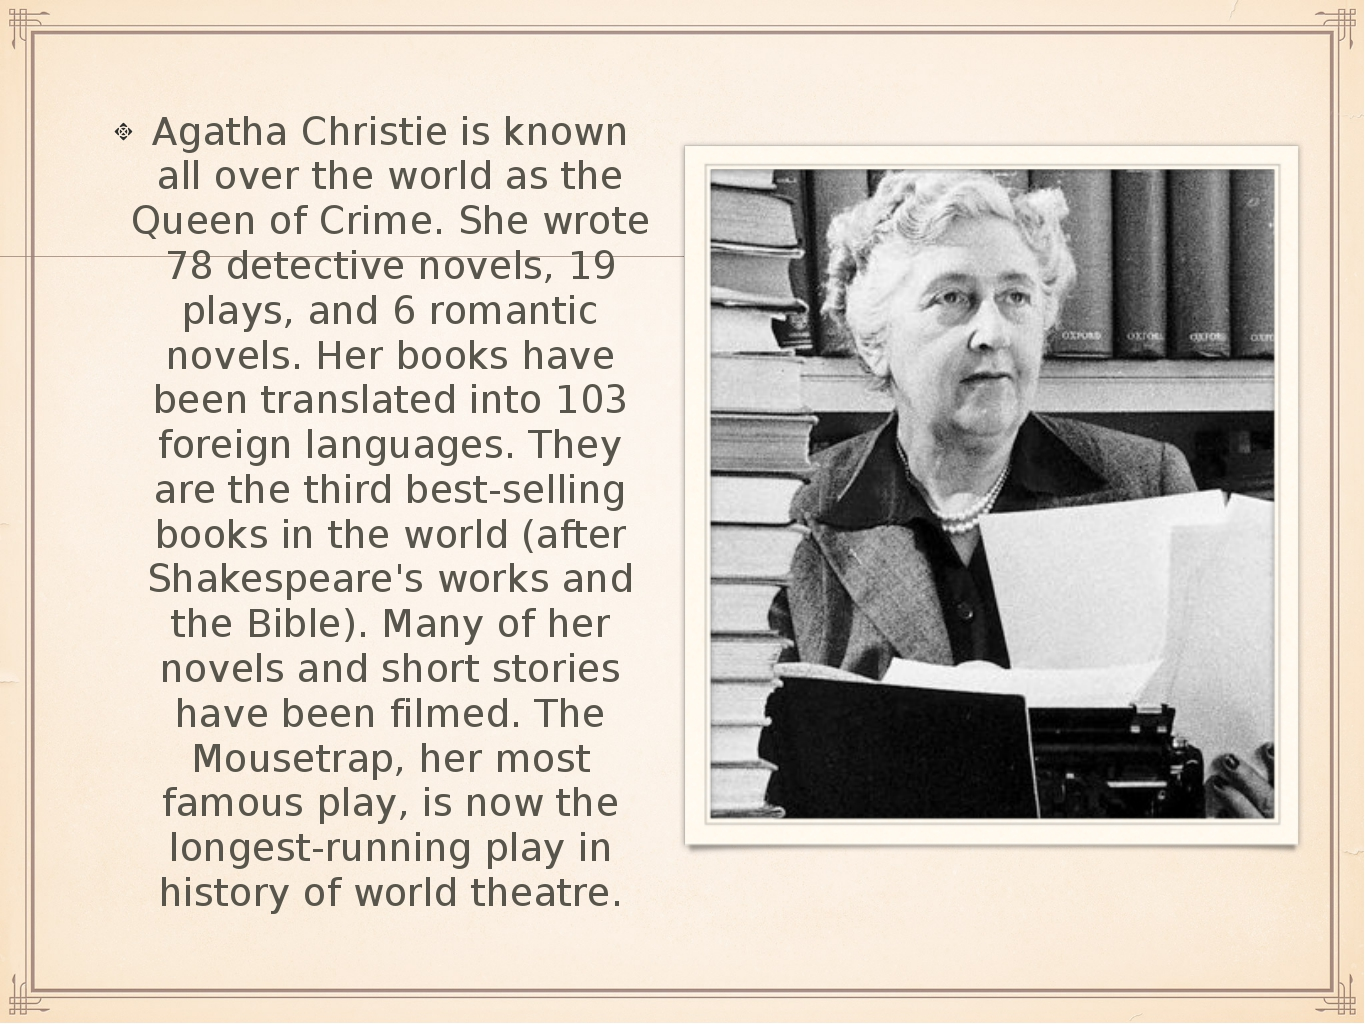 Agatha Christie is known all over the world as the Queen of Crime. She wrote...